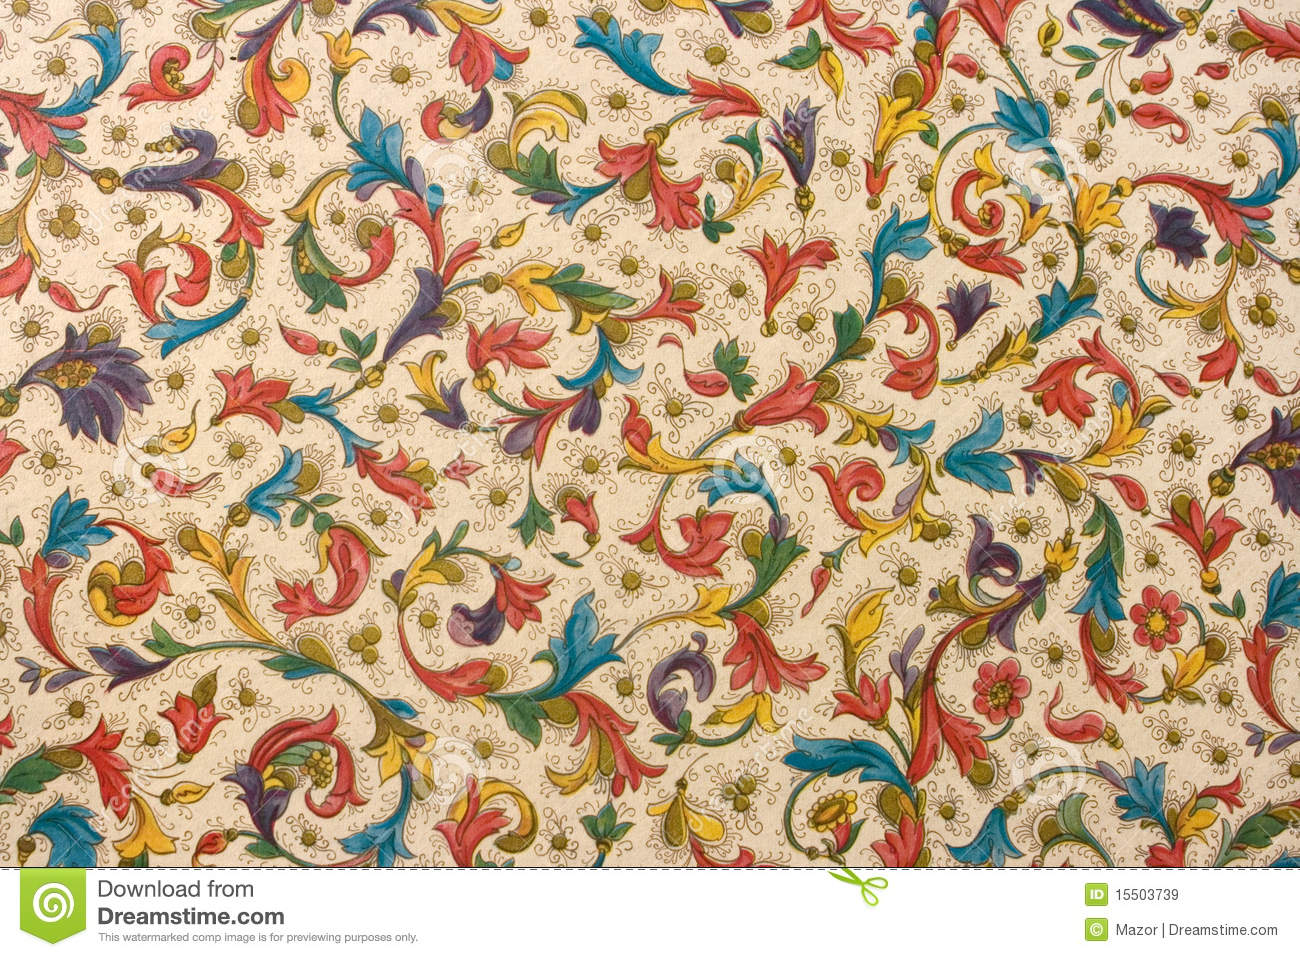 Download Colorful Retro Tapestry Textile Pattern Stock Image - Image of motif, adorned: 15503739